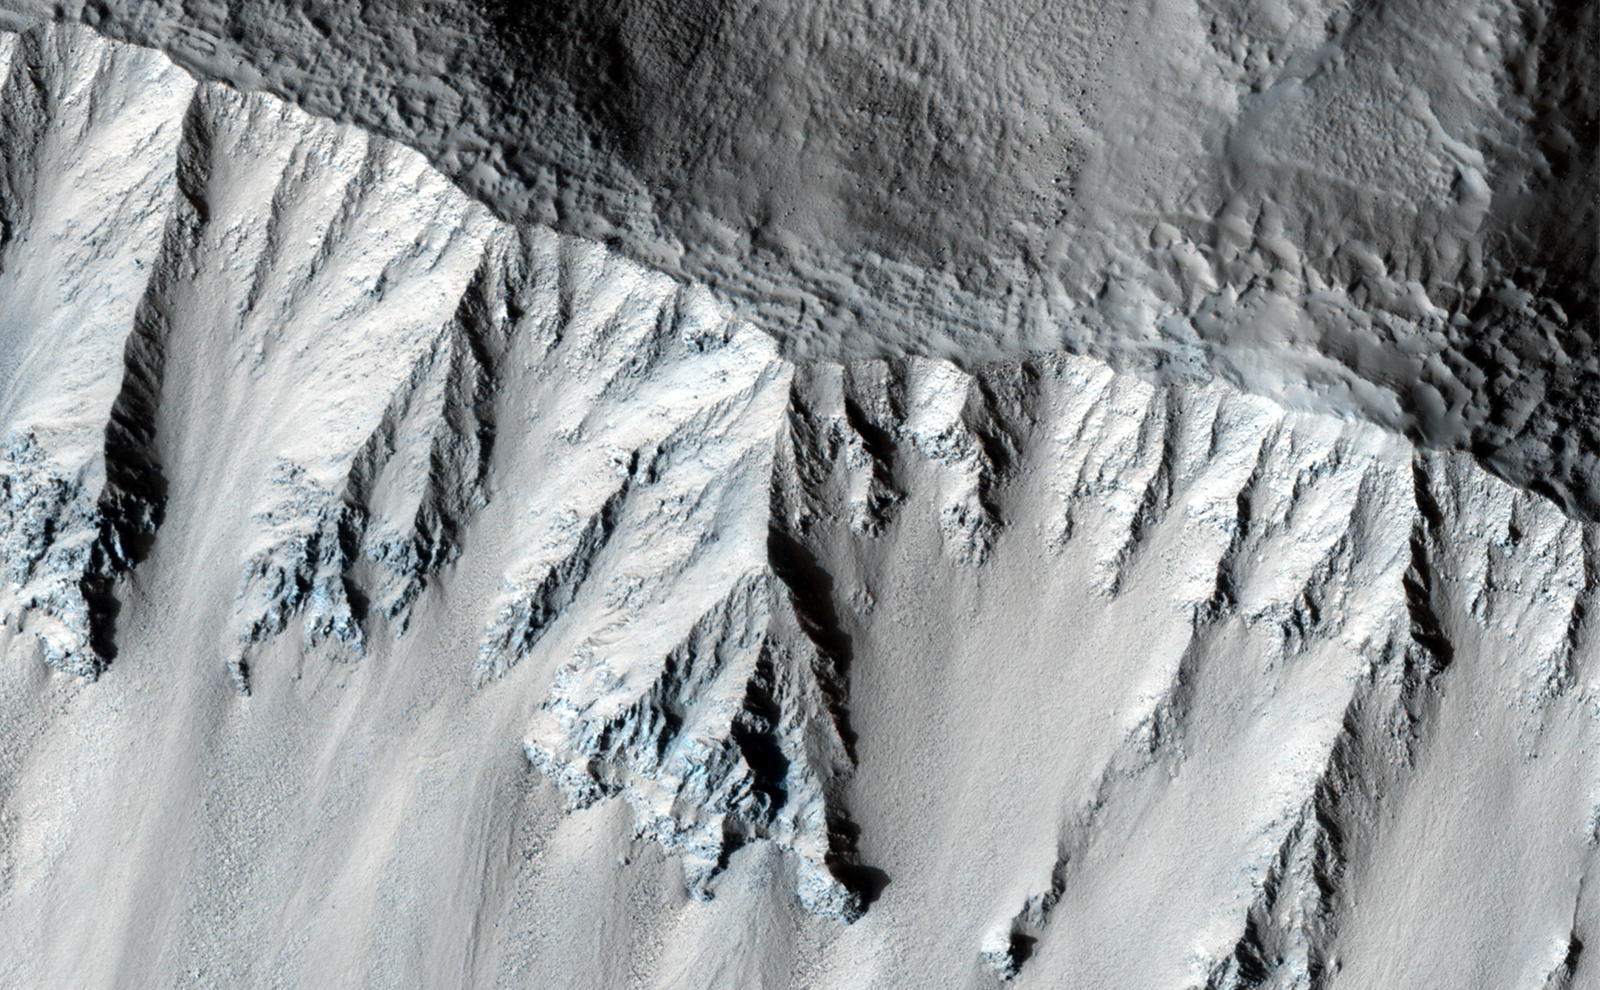 This fresh crater is located in the northern mid-latitudes. It is designated as fresh because of its very sharp rim.  The crater has experienced some modification since it formed, including a few tiny craters on the south wall.  The rough texture of the floor is suggestive of ground ice, which is expected to exist in the mid-latitudes. Ground ice aids gravity in moving material from the crater walls towards the center. Material is visible slumping off the northwest crater wall in this fashion. The wavy texture of the center of the crater floor suggests that material has been transported from the walls and merged in the center.